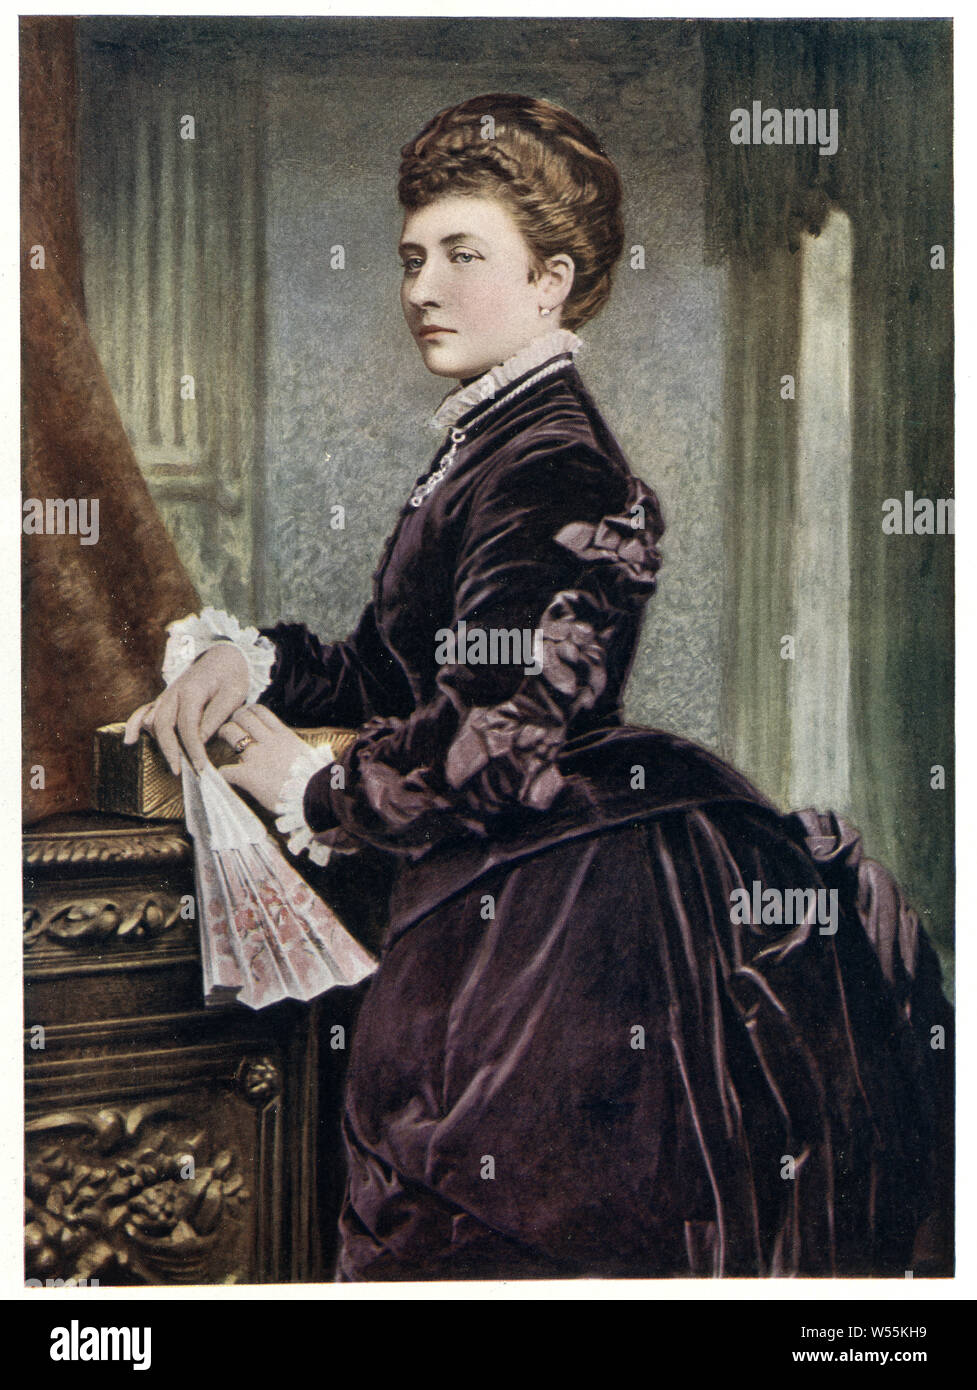 Princess Louise, Duchess of Argyll the sixth child and fourth daughter of Queen Victoria and Prince Albert. In her public life, she was a strong proponent of the arts and higher education and of the feminist cause. Stock Photo